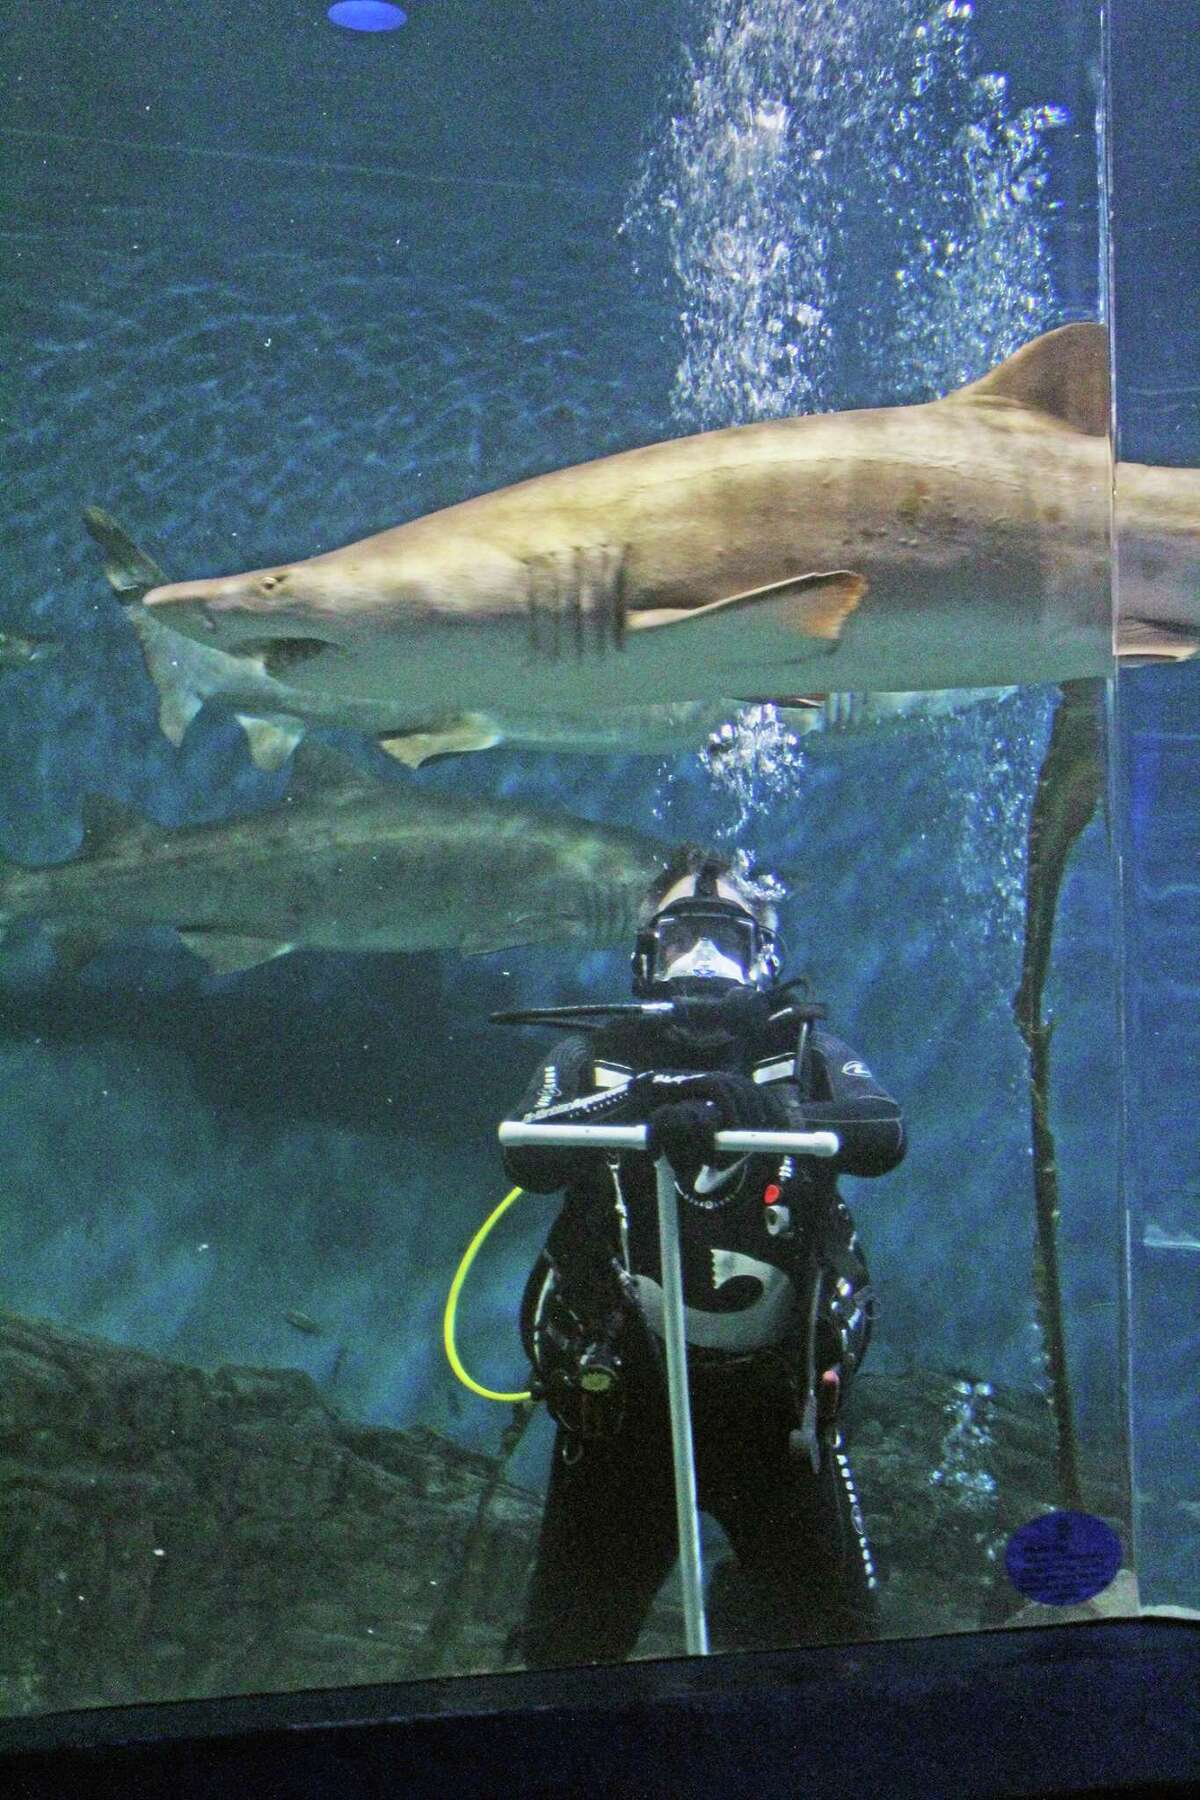 The Maritime Aquarium is seeking volunteers to jump into the facility's 110,000-gallon tank with it's seven resident sharks.